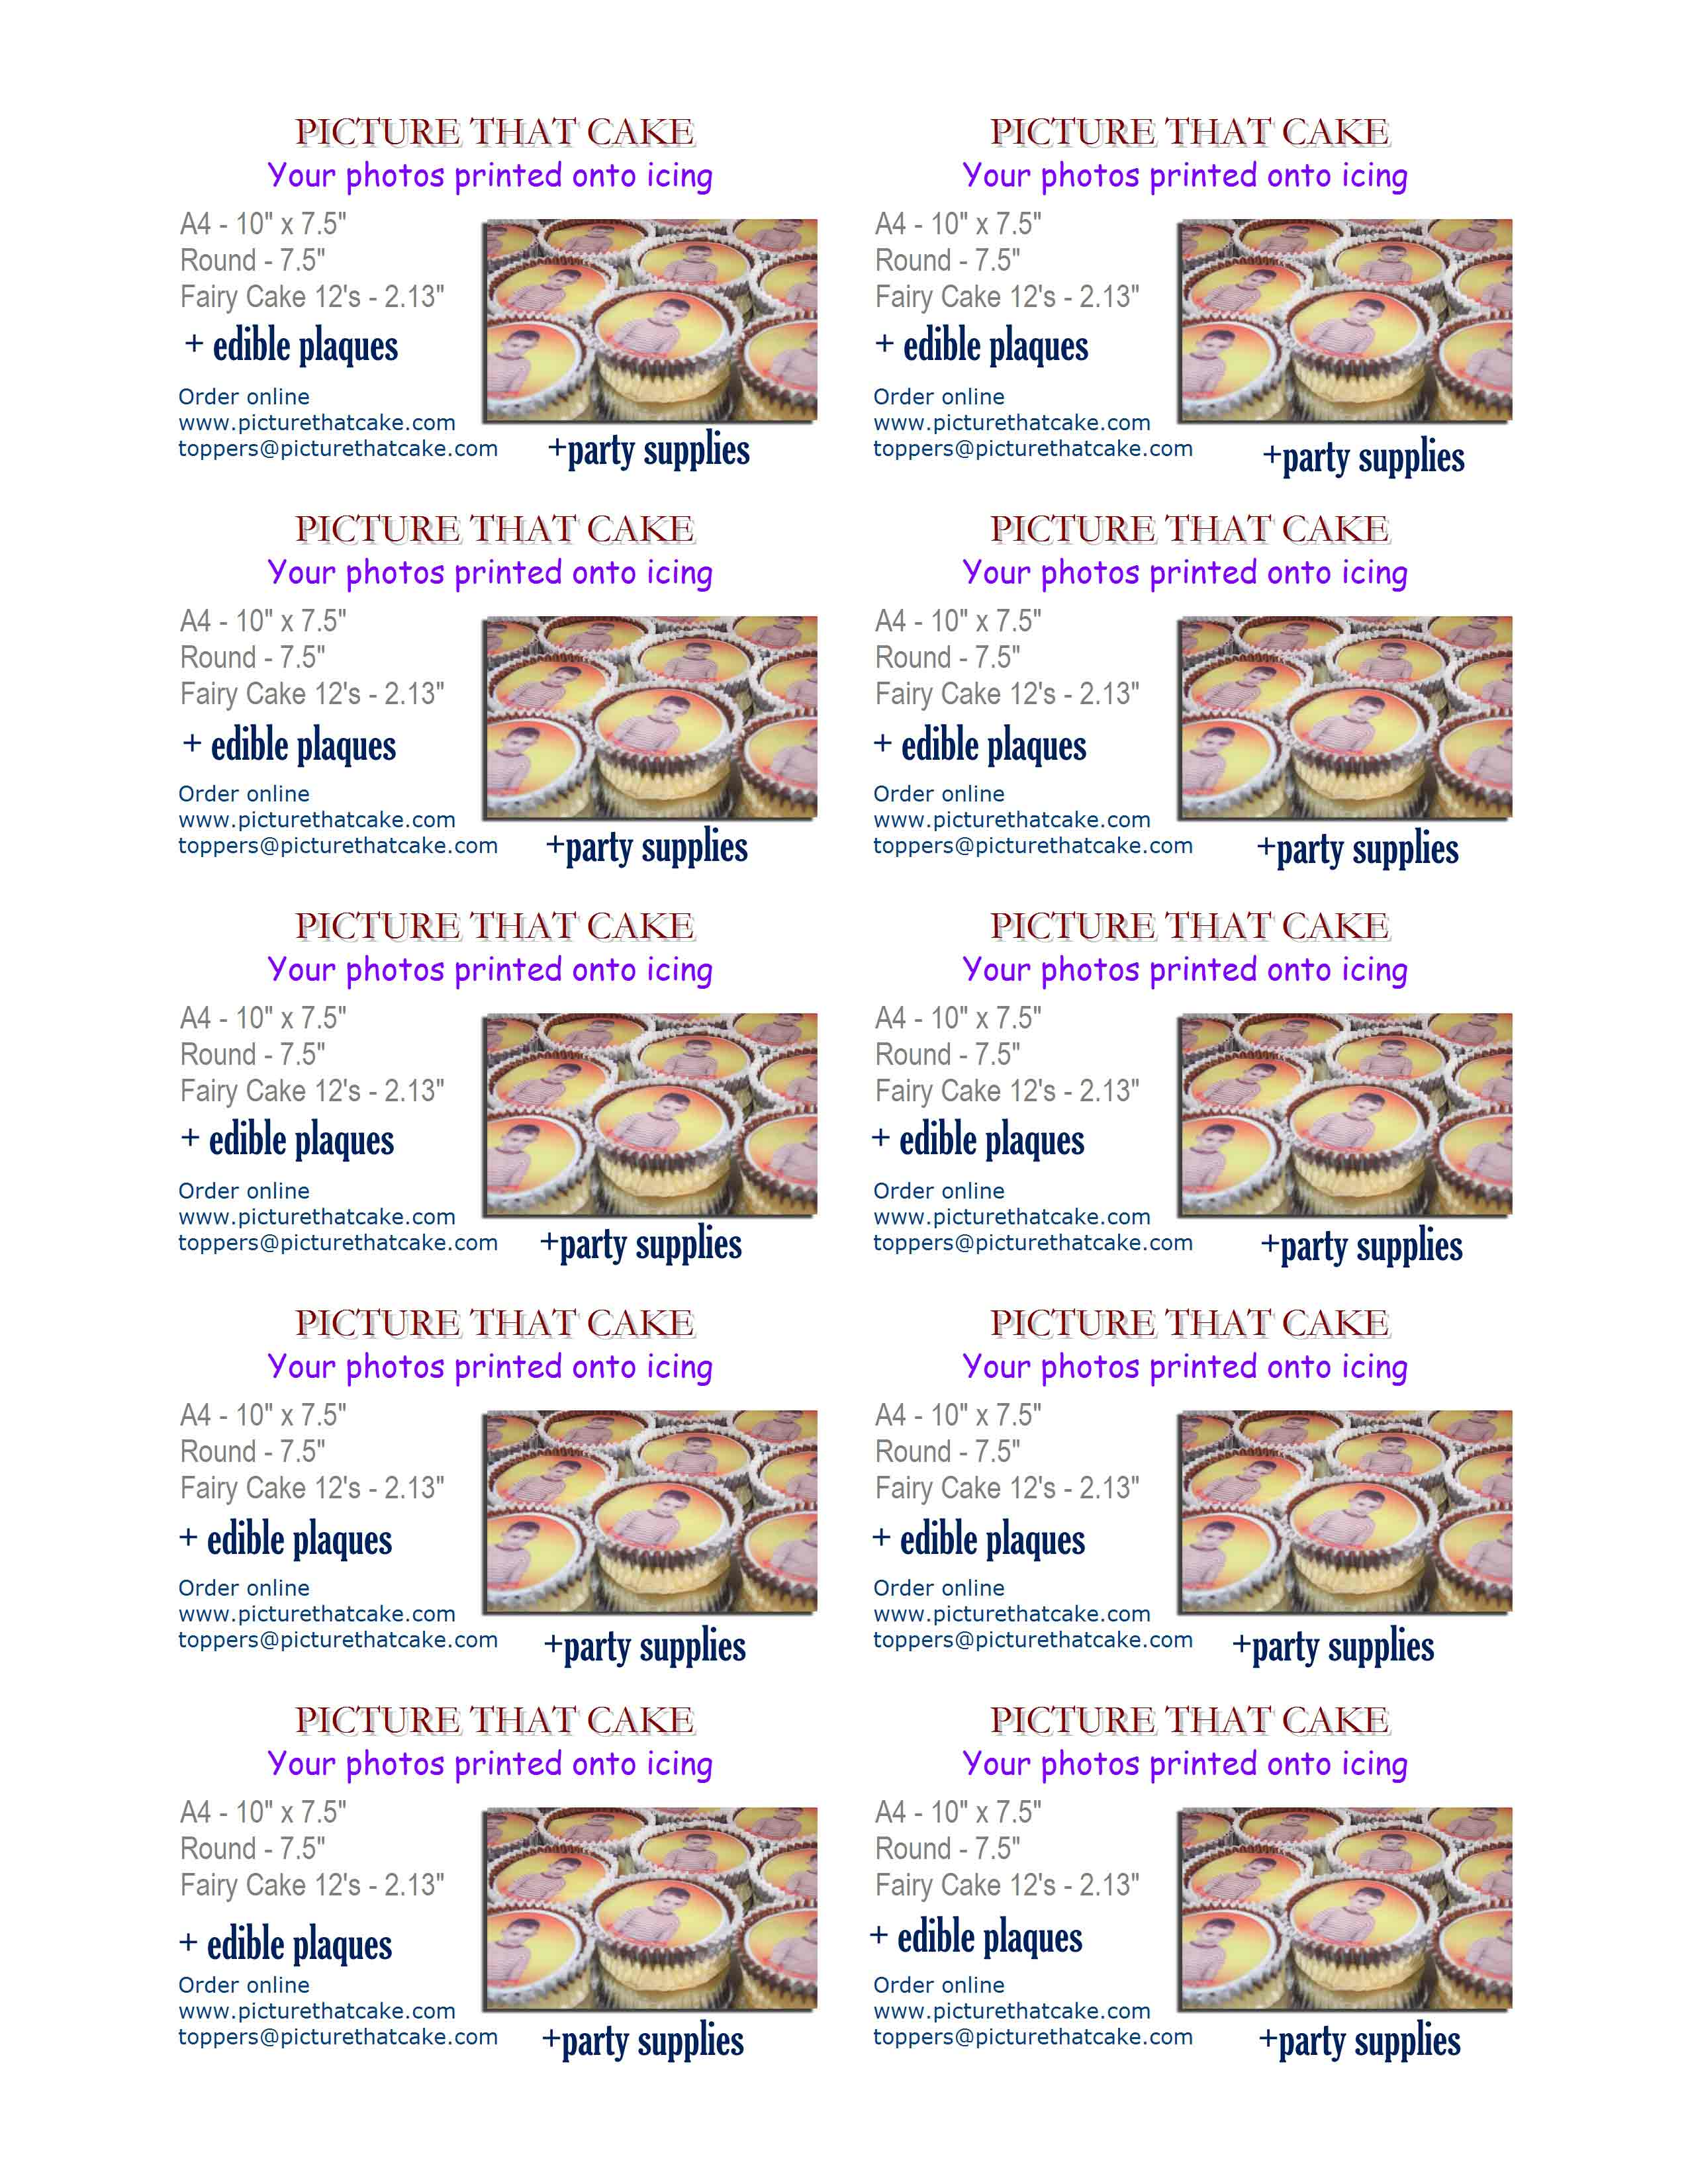 Print our business card picture that cake caketoppers icing click here to view our business cards or right click and save as or right click and save target then print it reheart Images